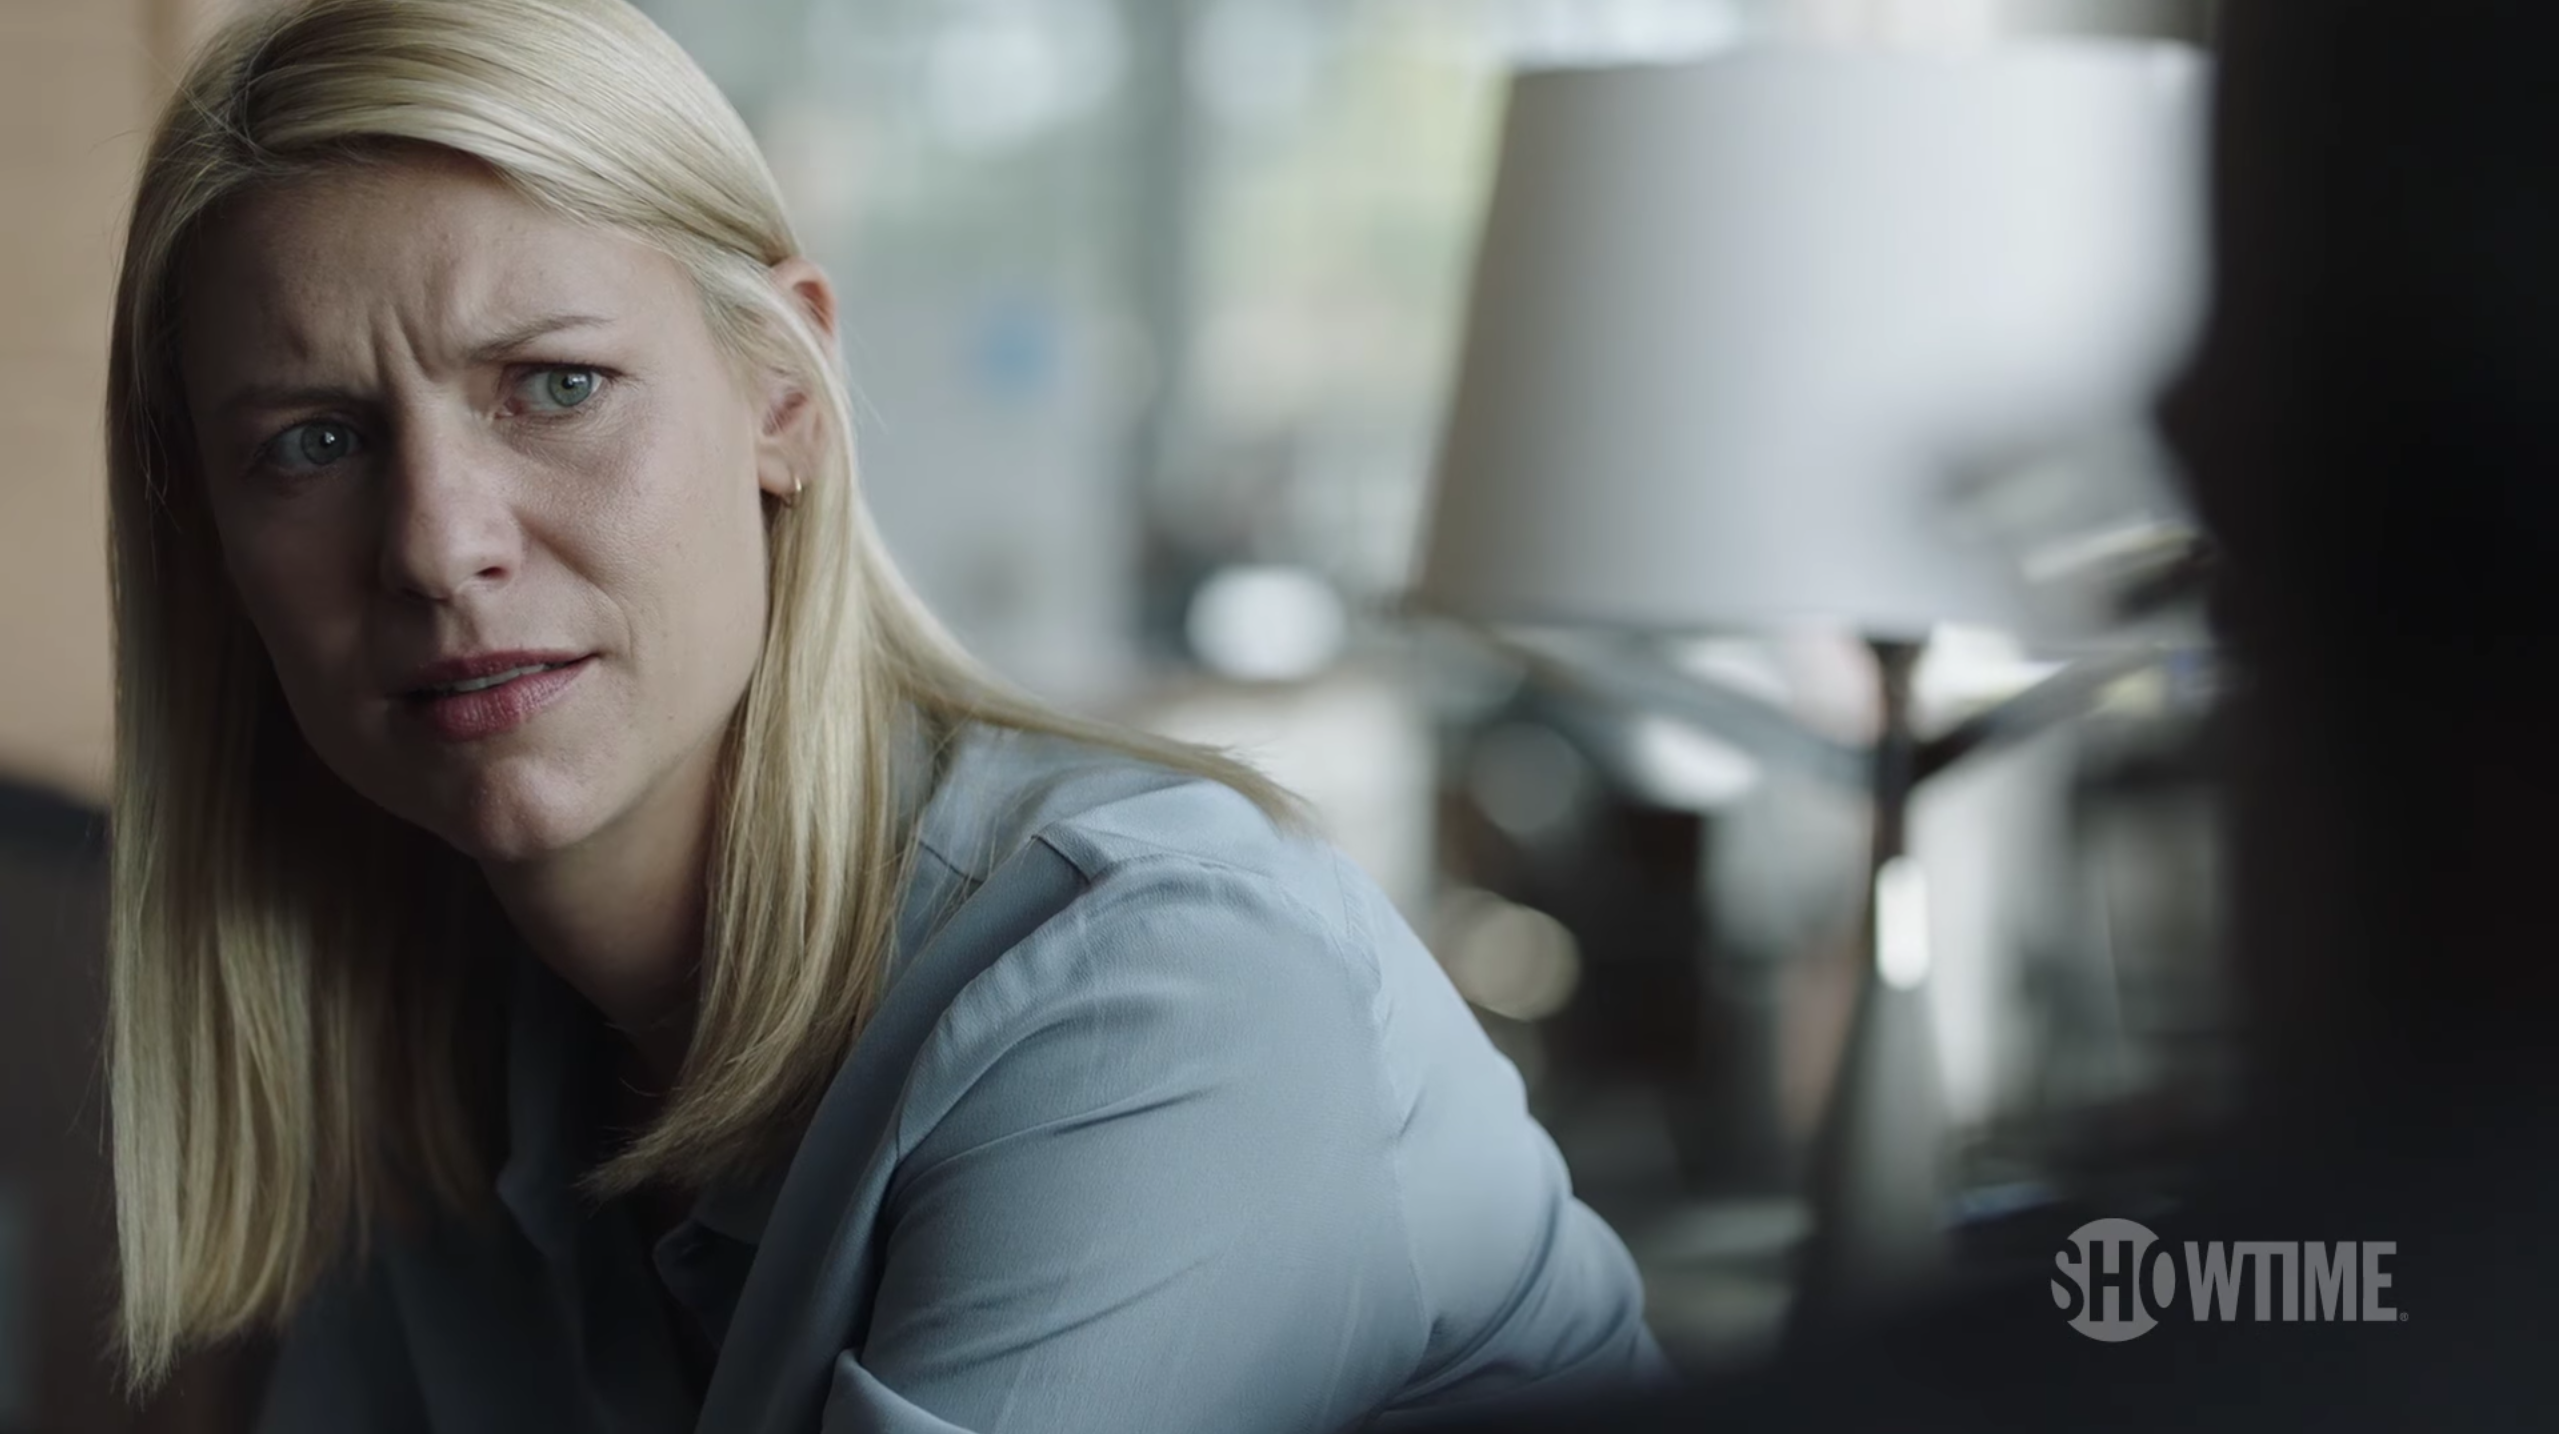 Showtime Releases First Footage From Season 6 of 'Homeland'